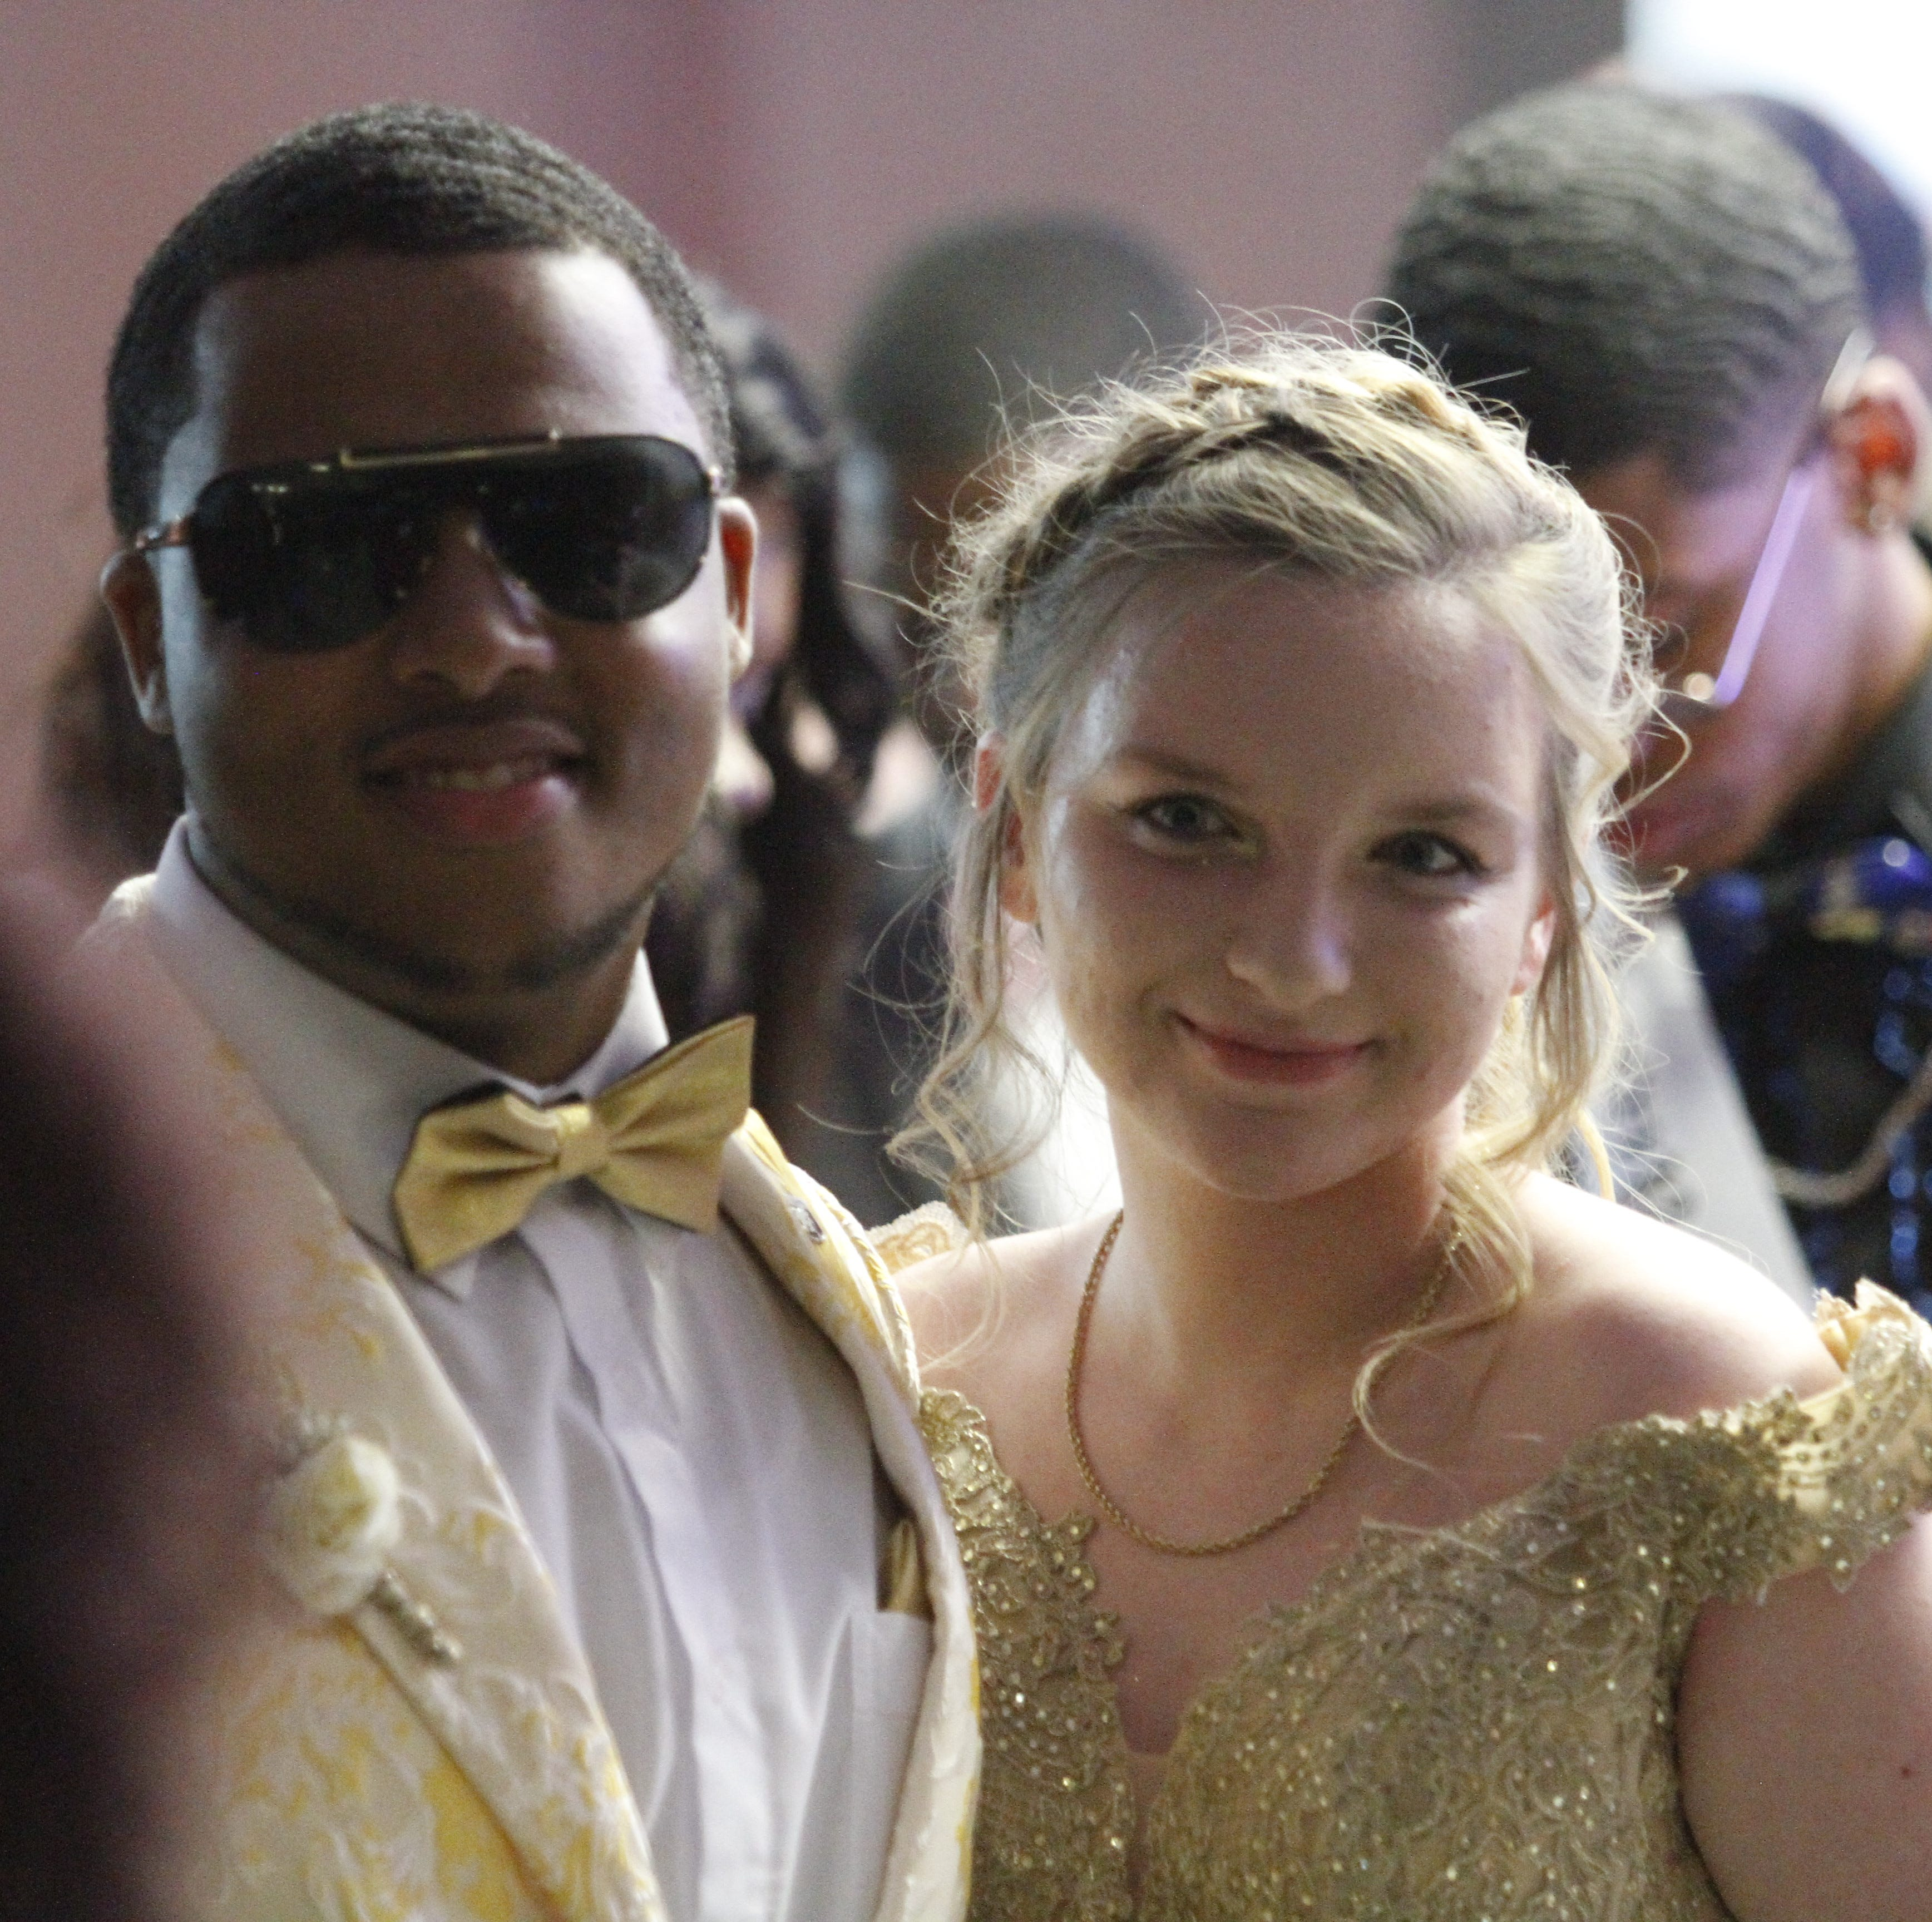 Northwest High walks the red carpet prior to 2019 prom